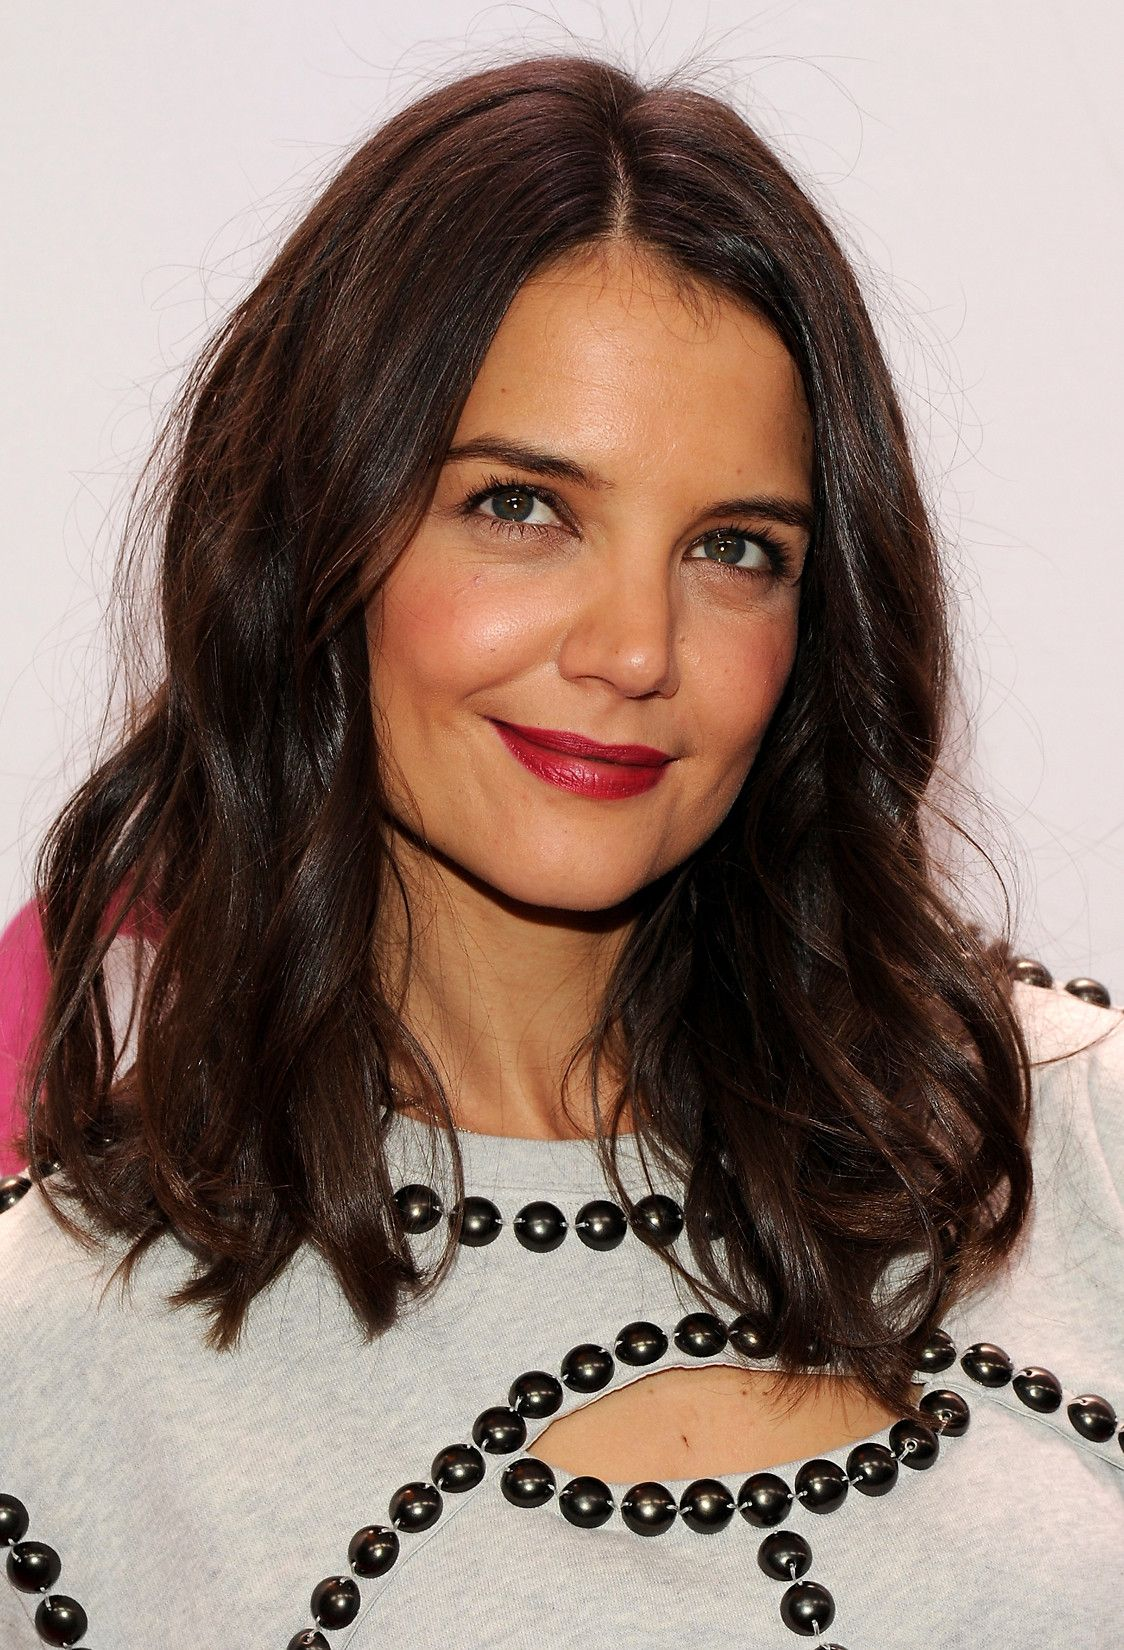 Katie Holmes Hairstyles Inspiration Katie Holmes Hair Love The Curls  Haircut  Pinterest  Katie